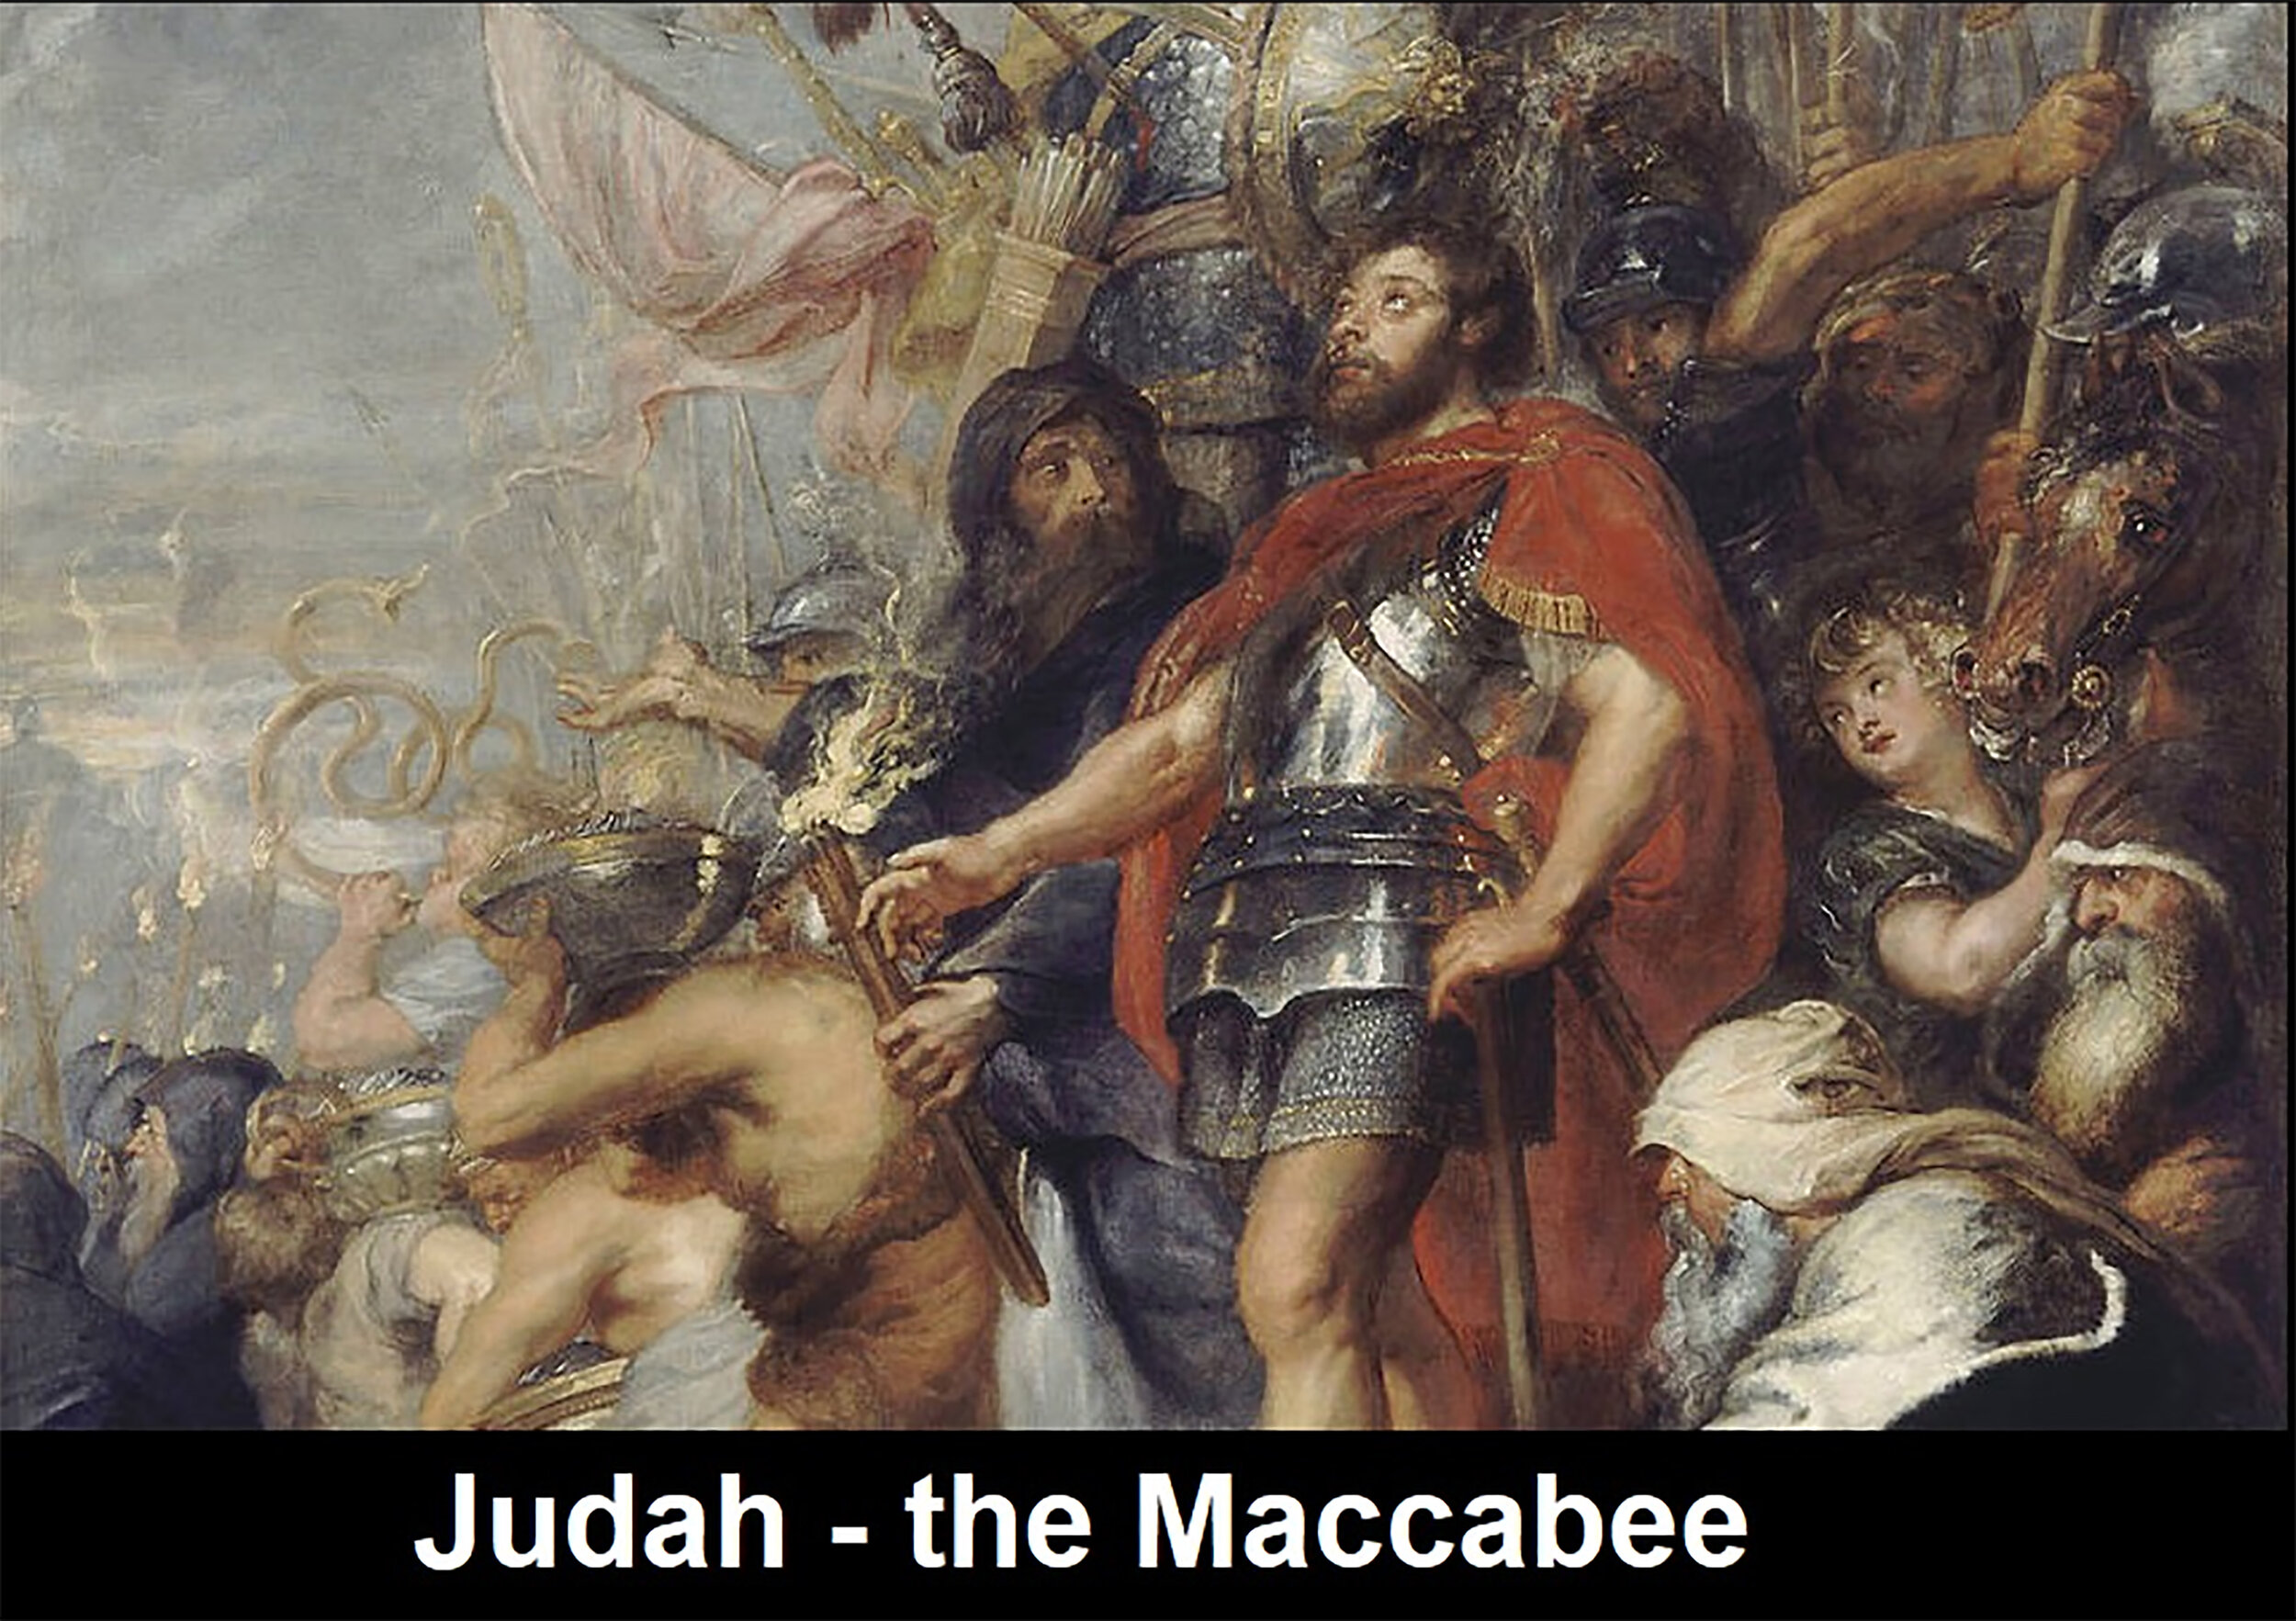 """The Maccabean Revolt cir. 164 AD Led to the First Feast of Dedication of the """"Cleansed Temple"""""""